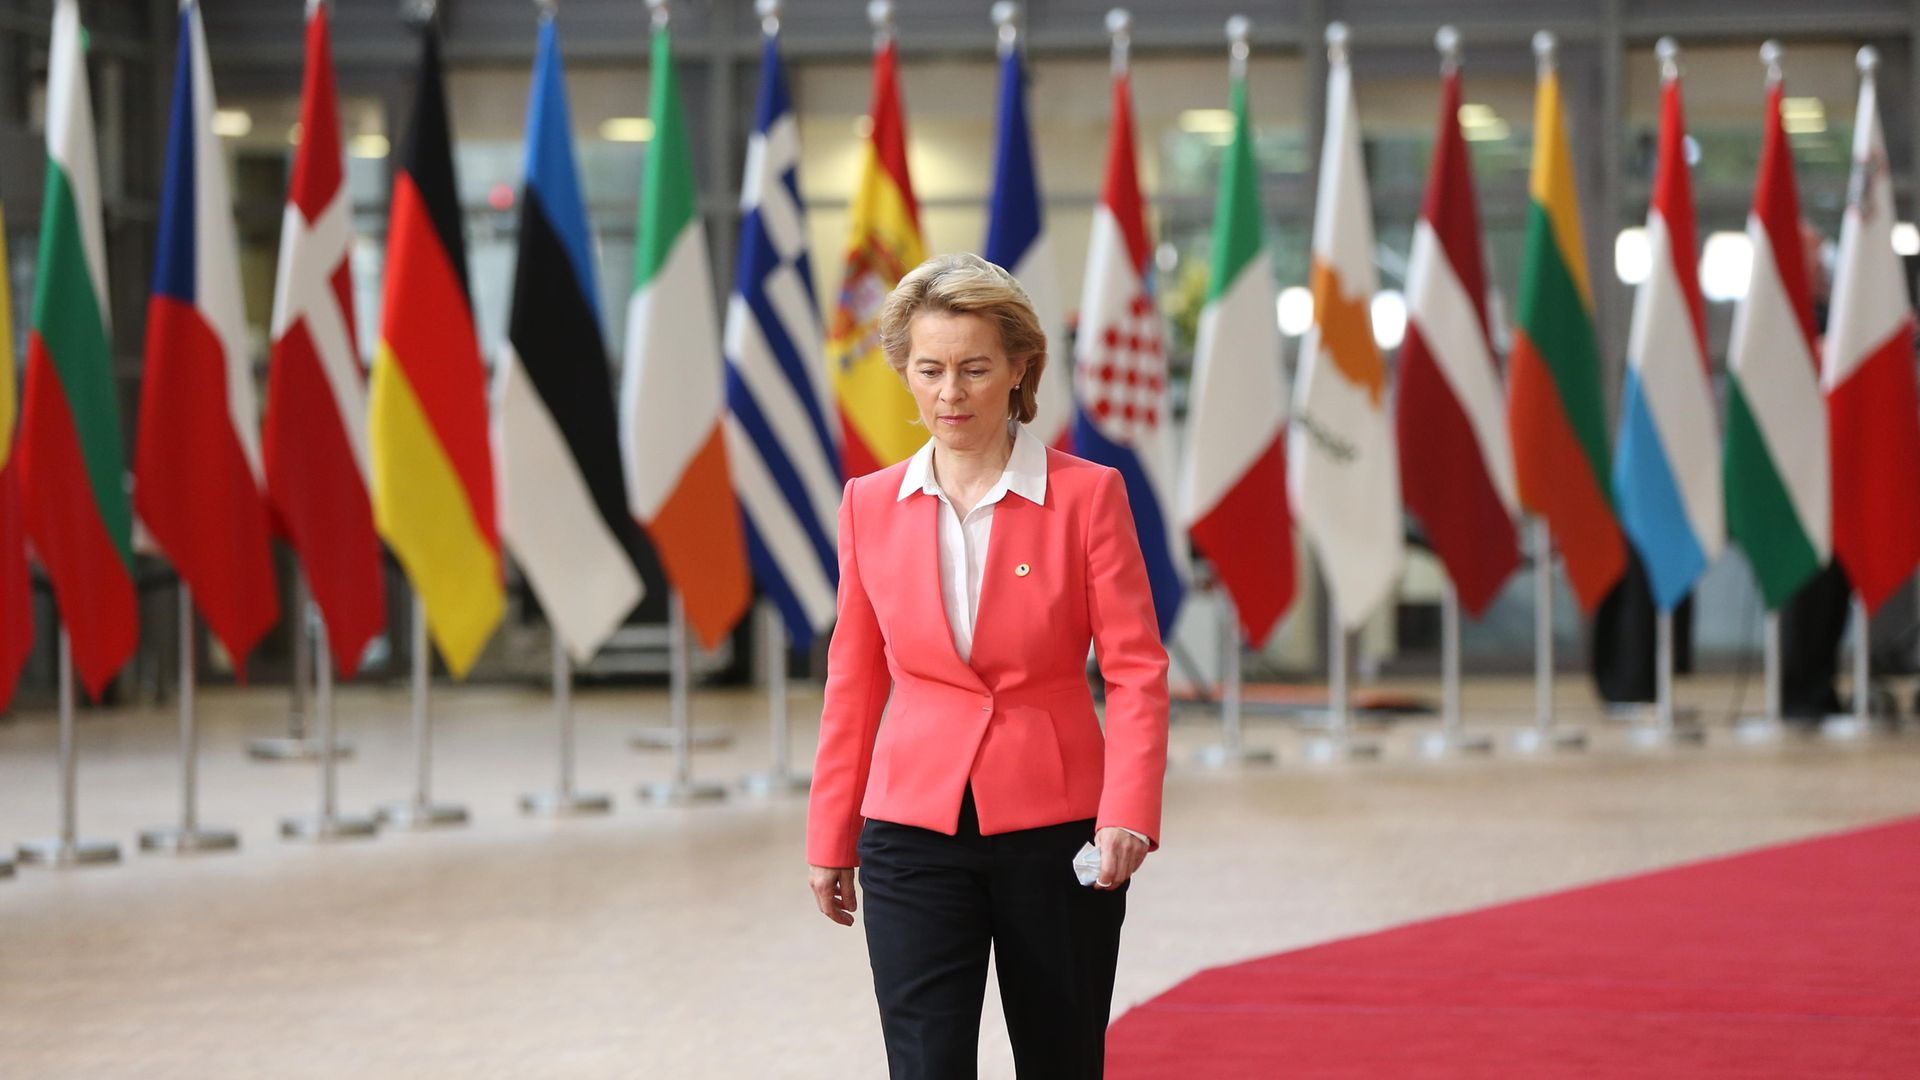 EUROPE'S FALL GUY: Ursula von der Leyen arrives for an EU summit on Covid in July 2020 - Credit: Getty Images